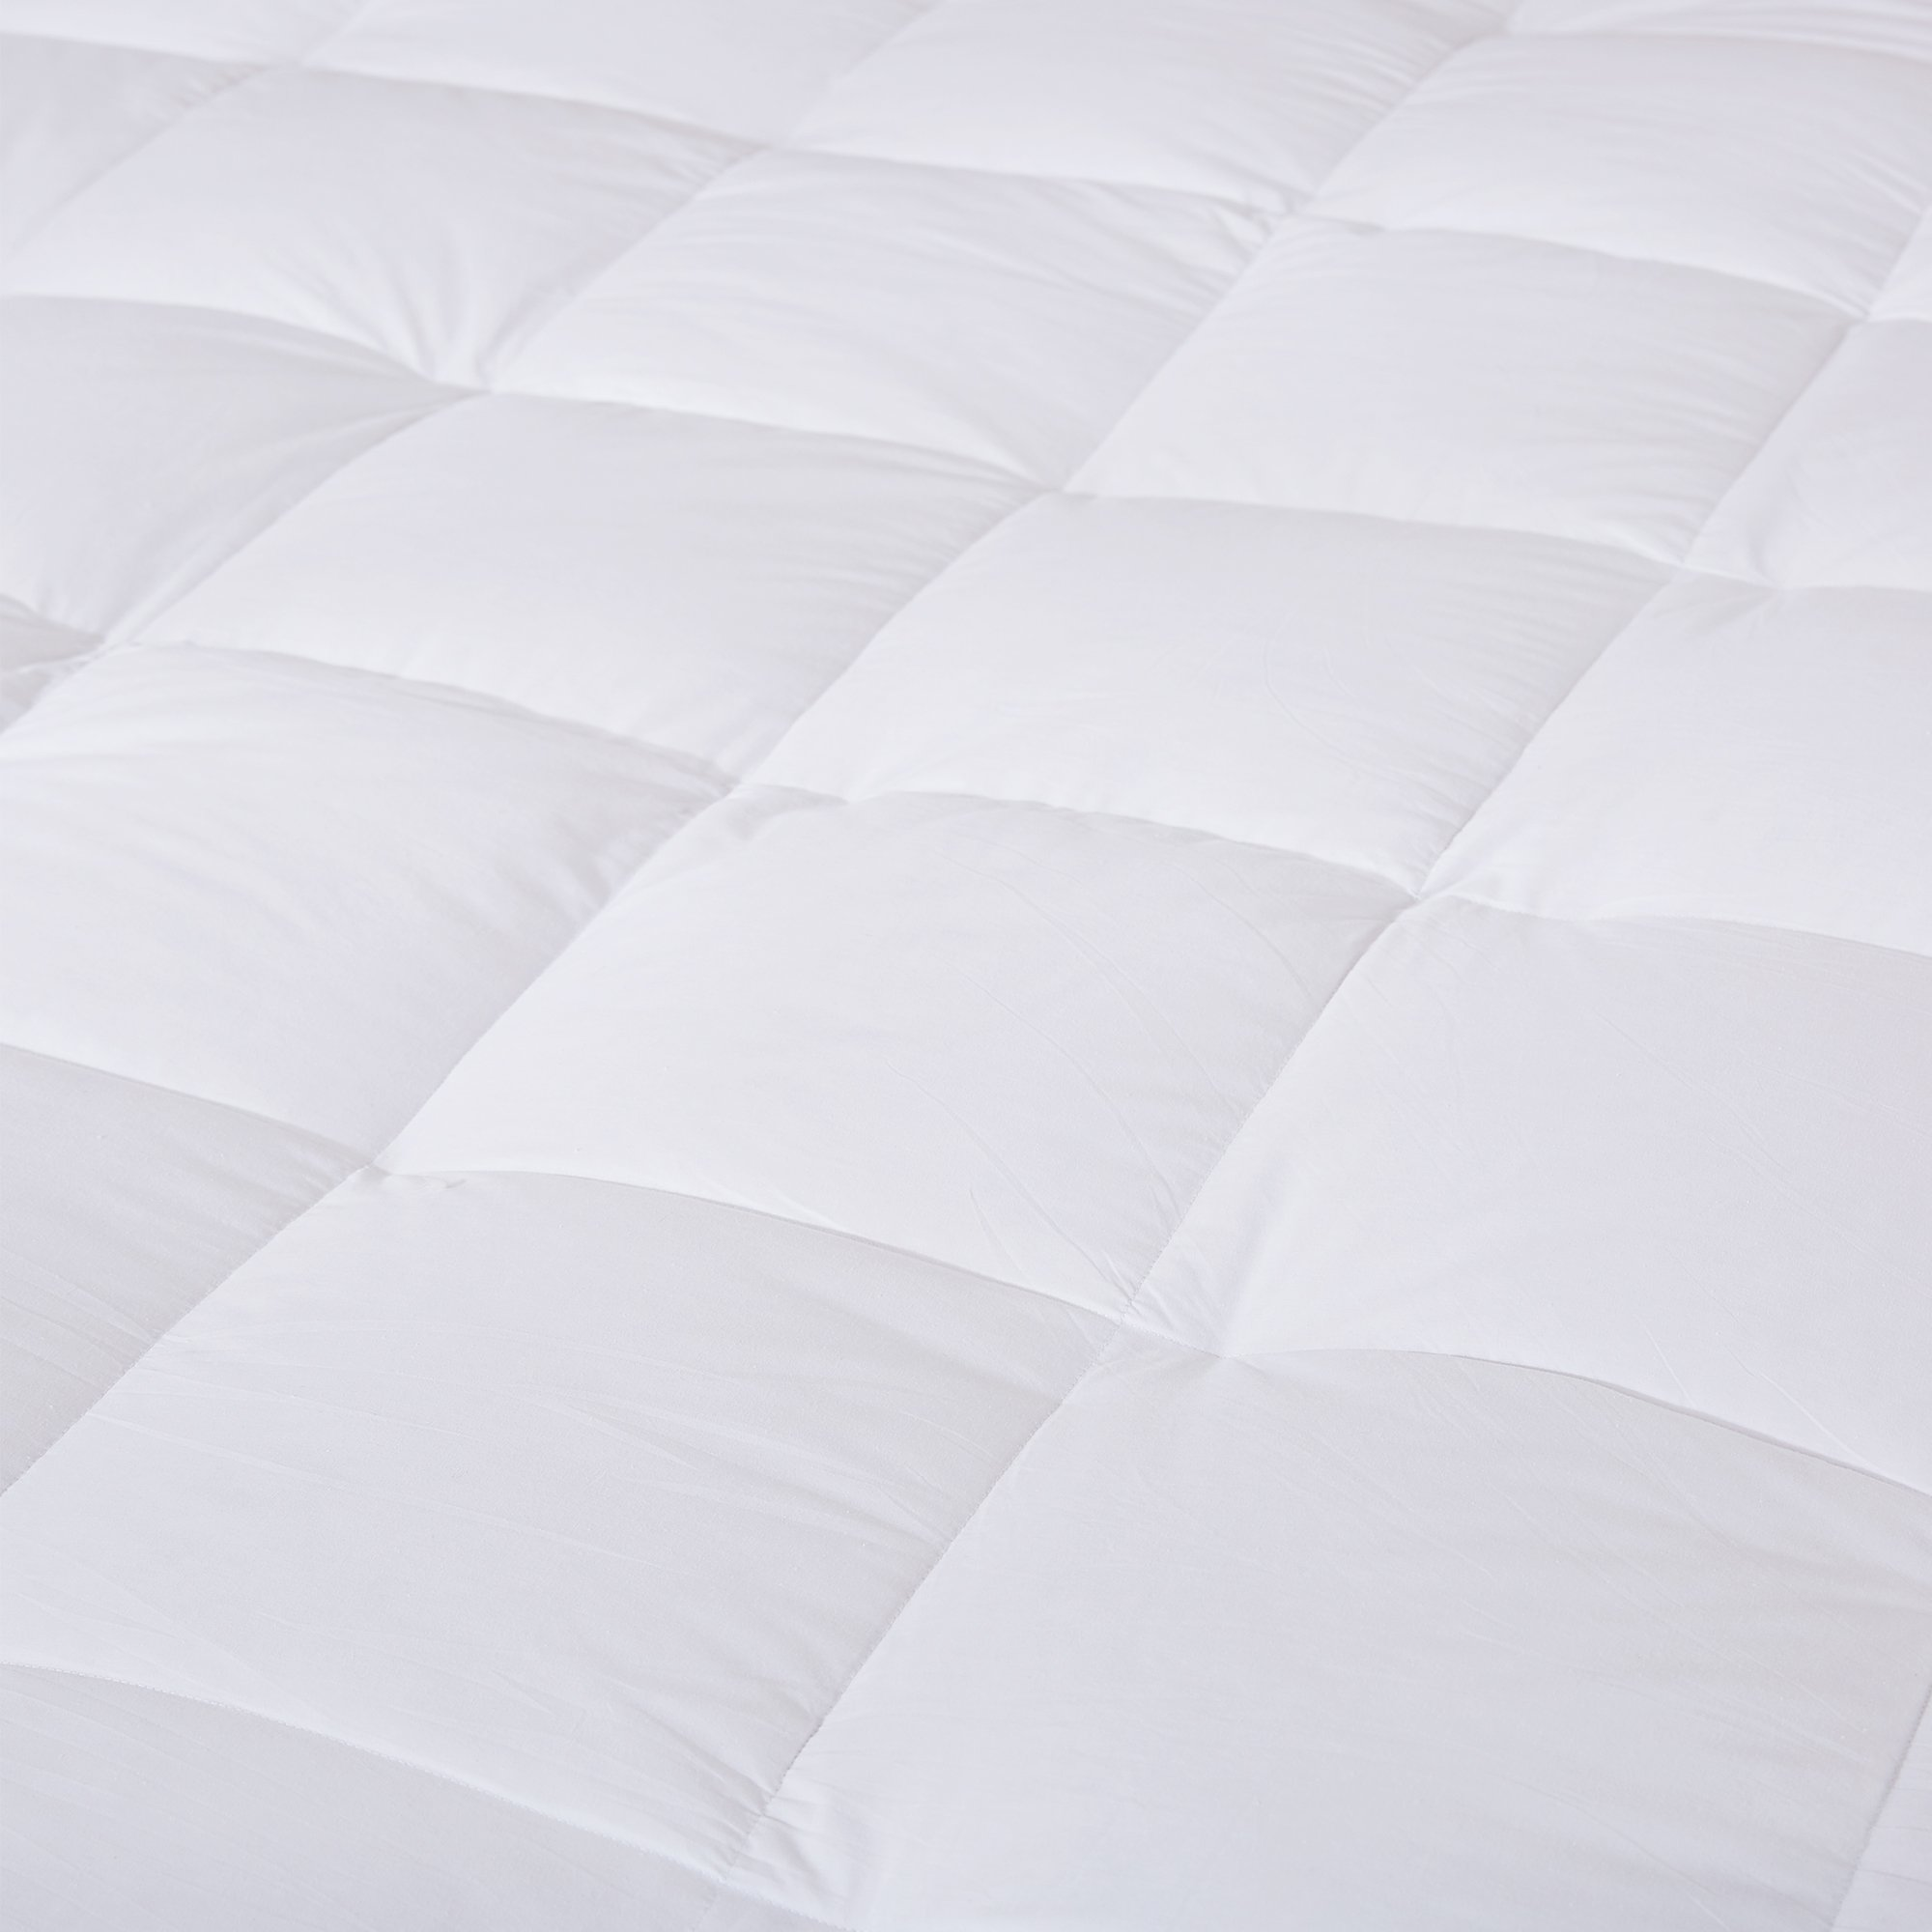 puredown Premium Natural White Goose Down Feather Overfilled Bed Topper 100% Cotton Fabric Mattress Pad Queen Down by puredown (Image #5)